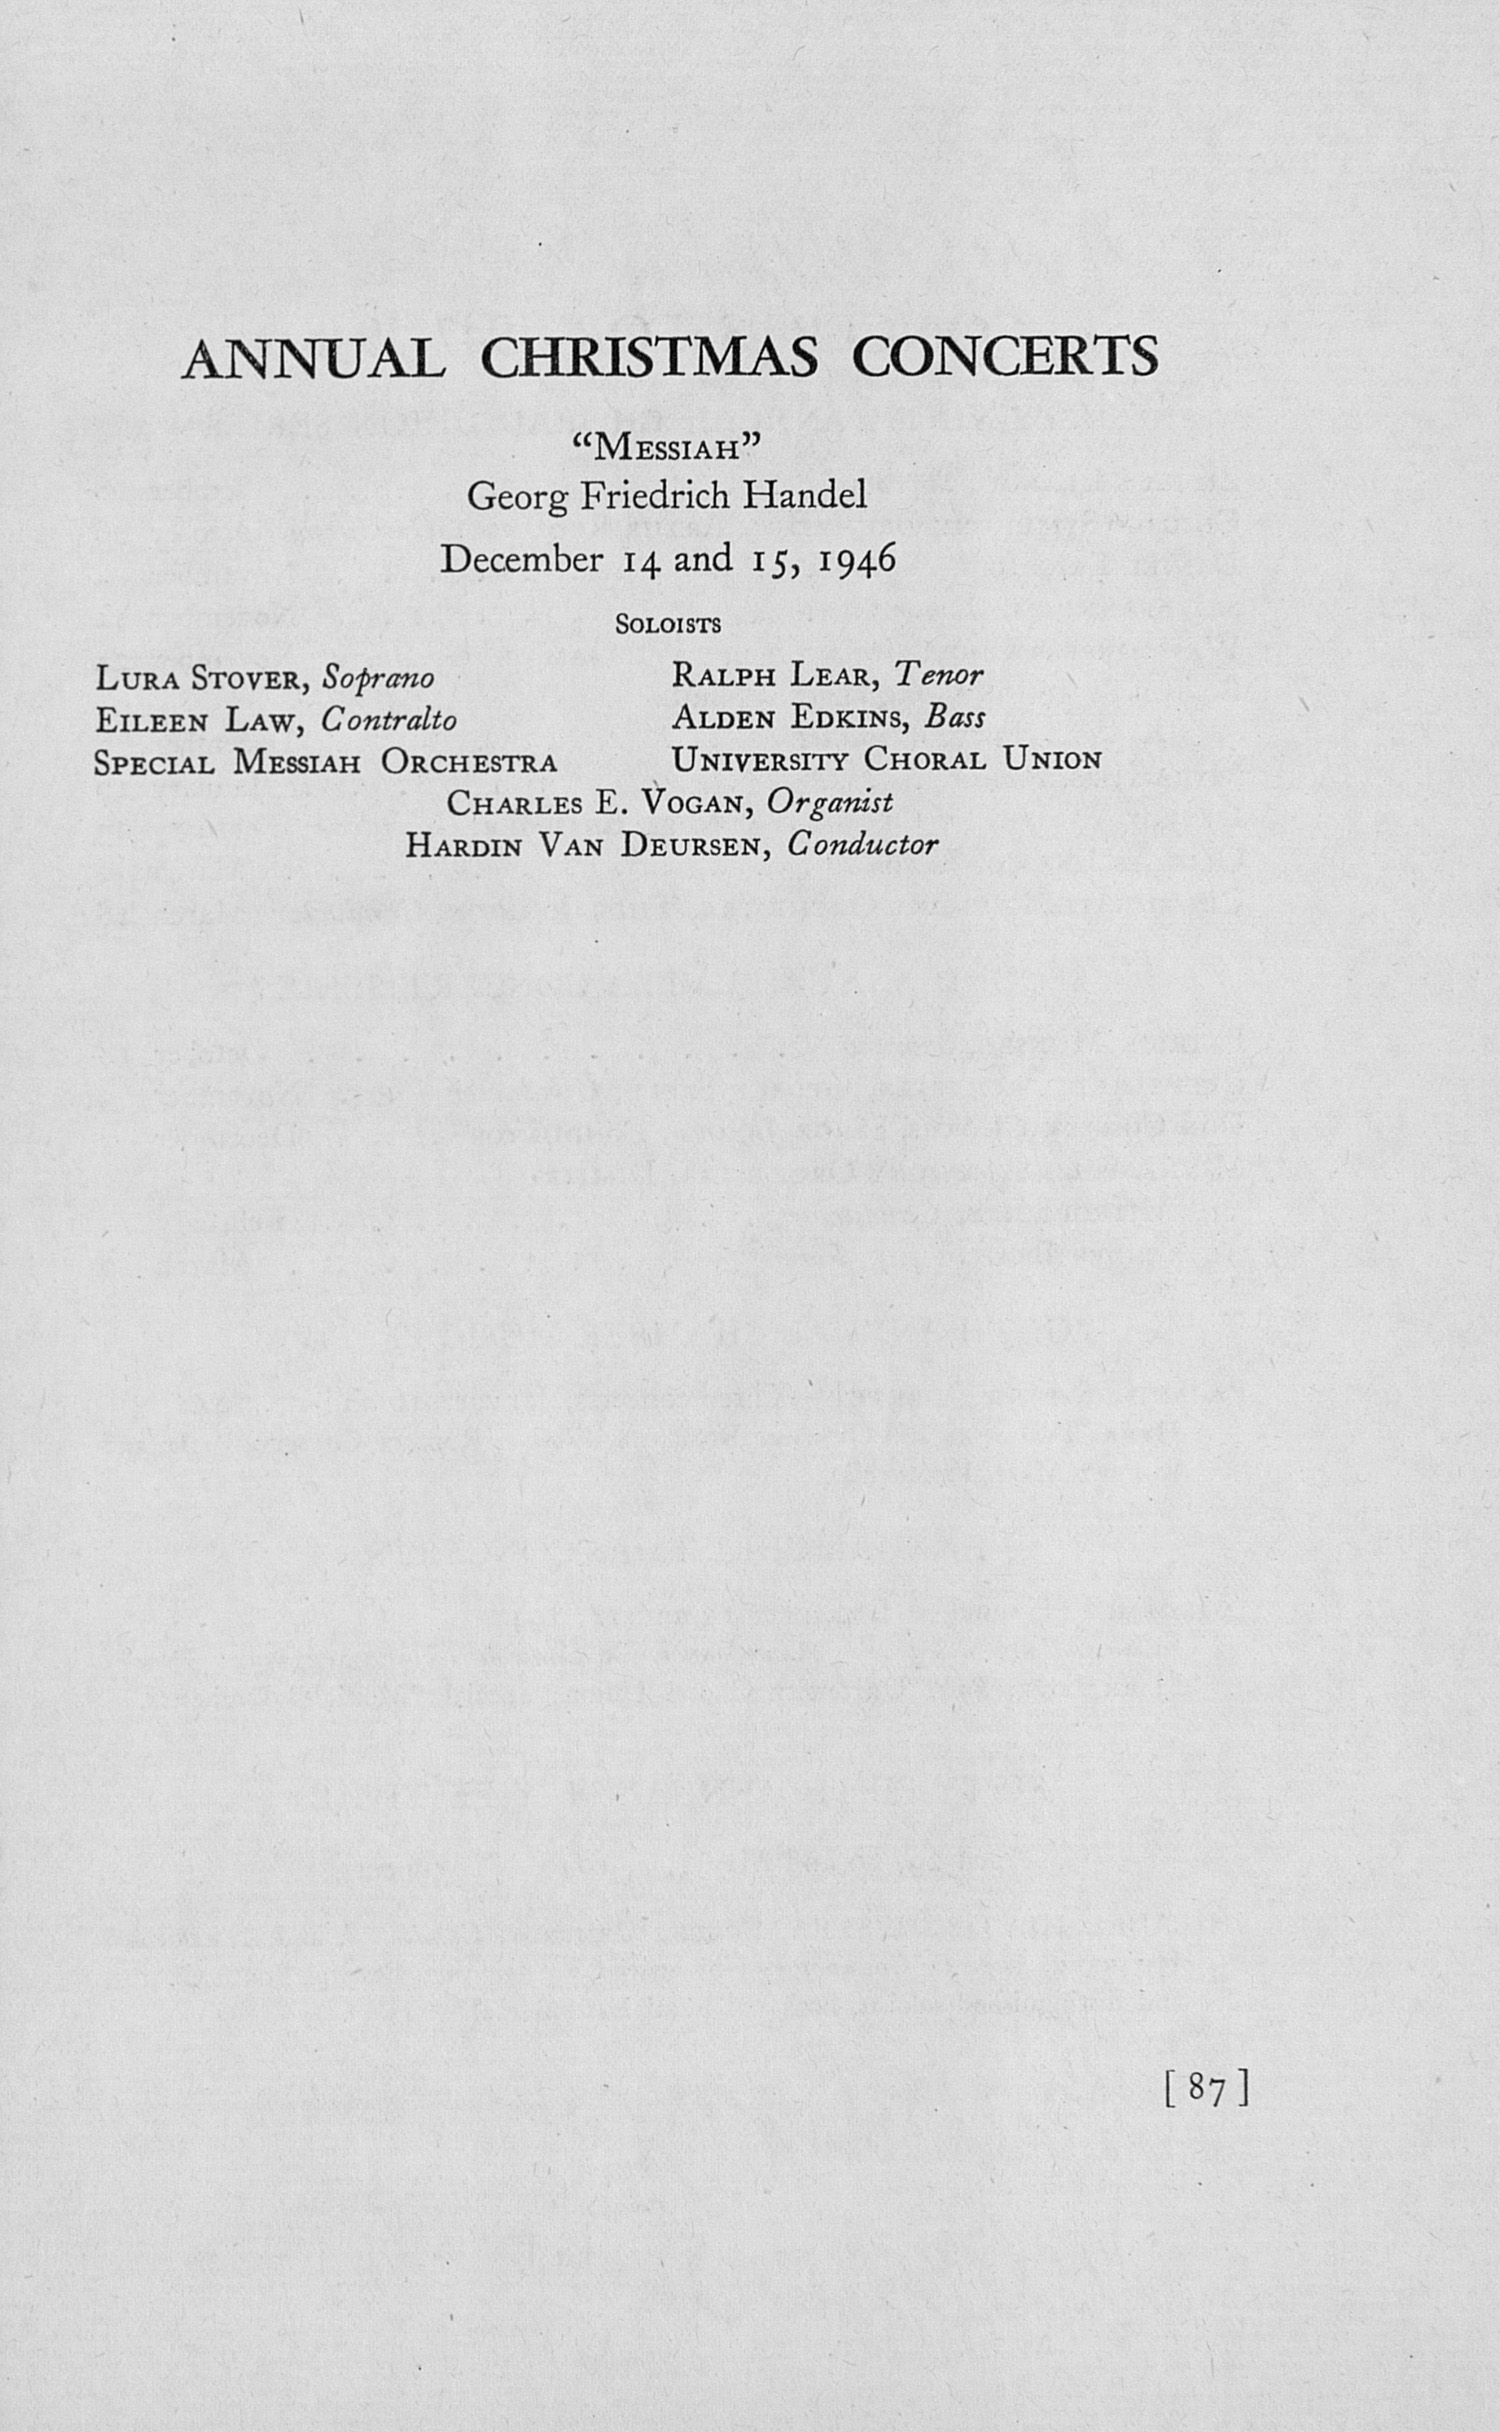 UMS Concert Program, May 8,9, 10, And 11, 1947: The Fifty-fourth Annual May Festival -- The Philadelphia Orchestra image